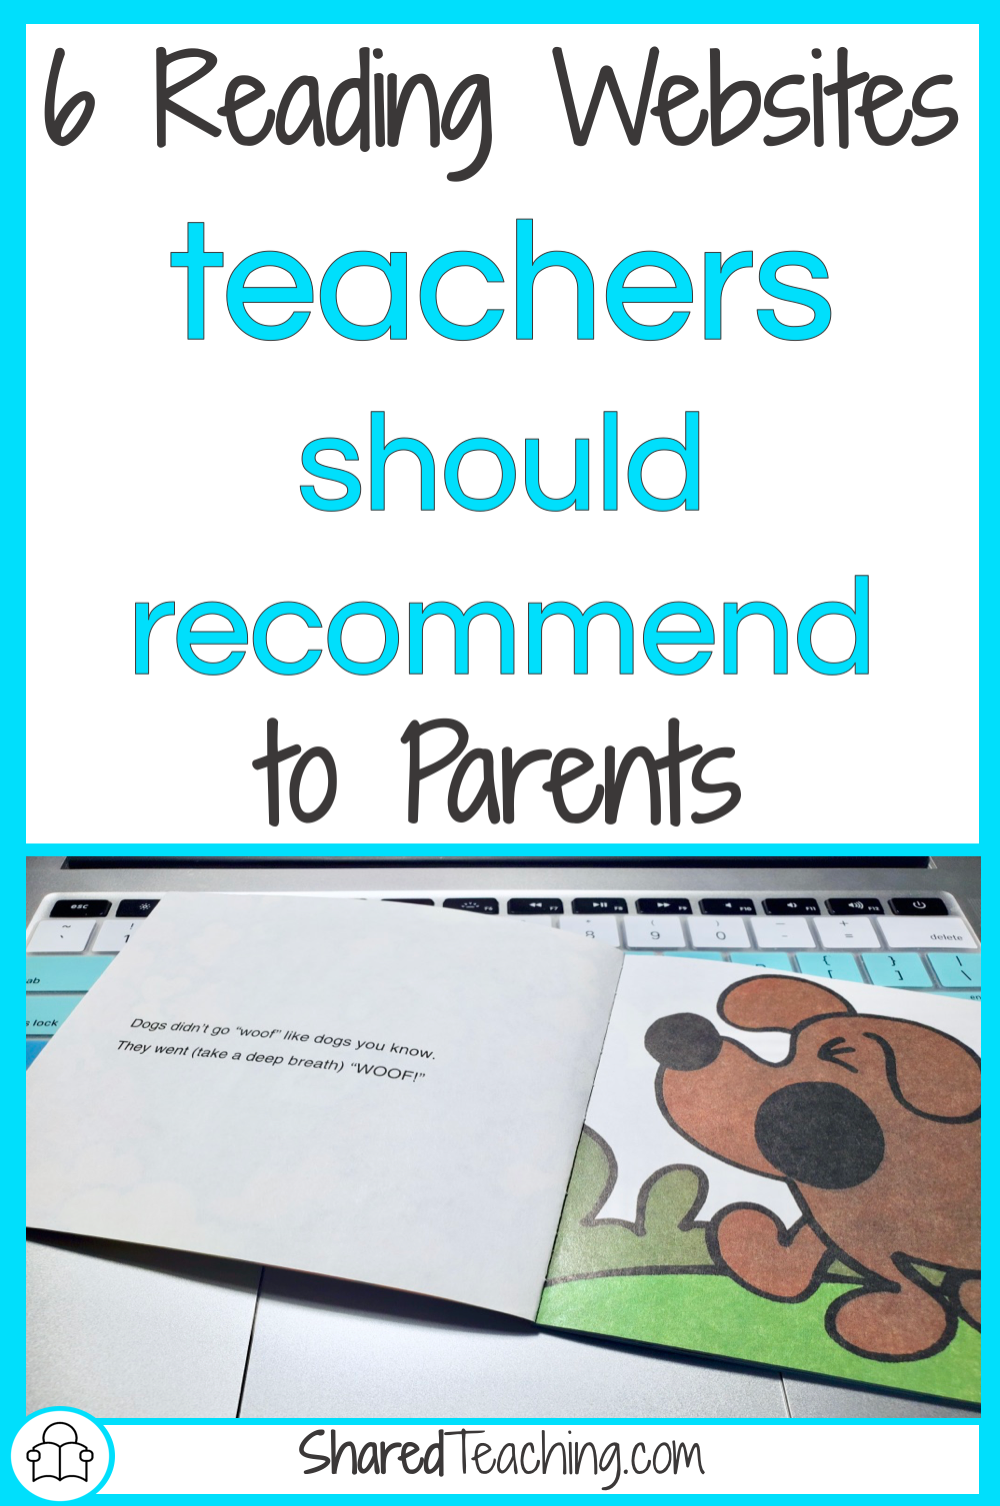 Best Free Reading Websites for Parents | Here are 6 of the best free reading websites for parents recommended by a seasoned teacher. Great for primary students and their parents to practice at home.